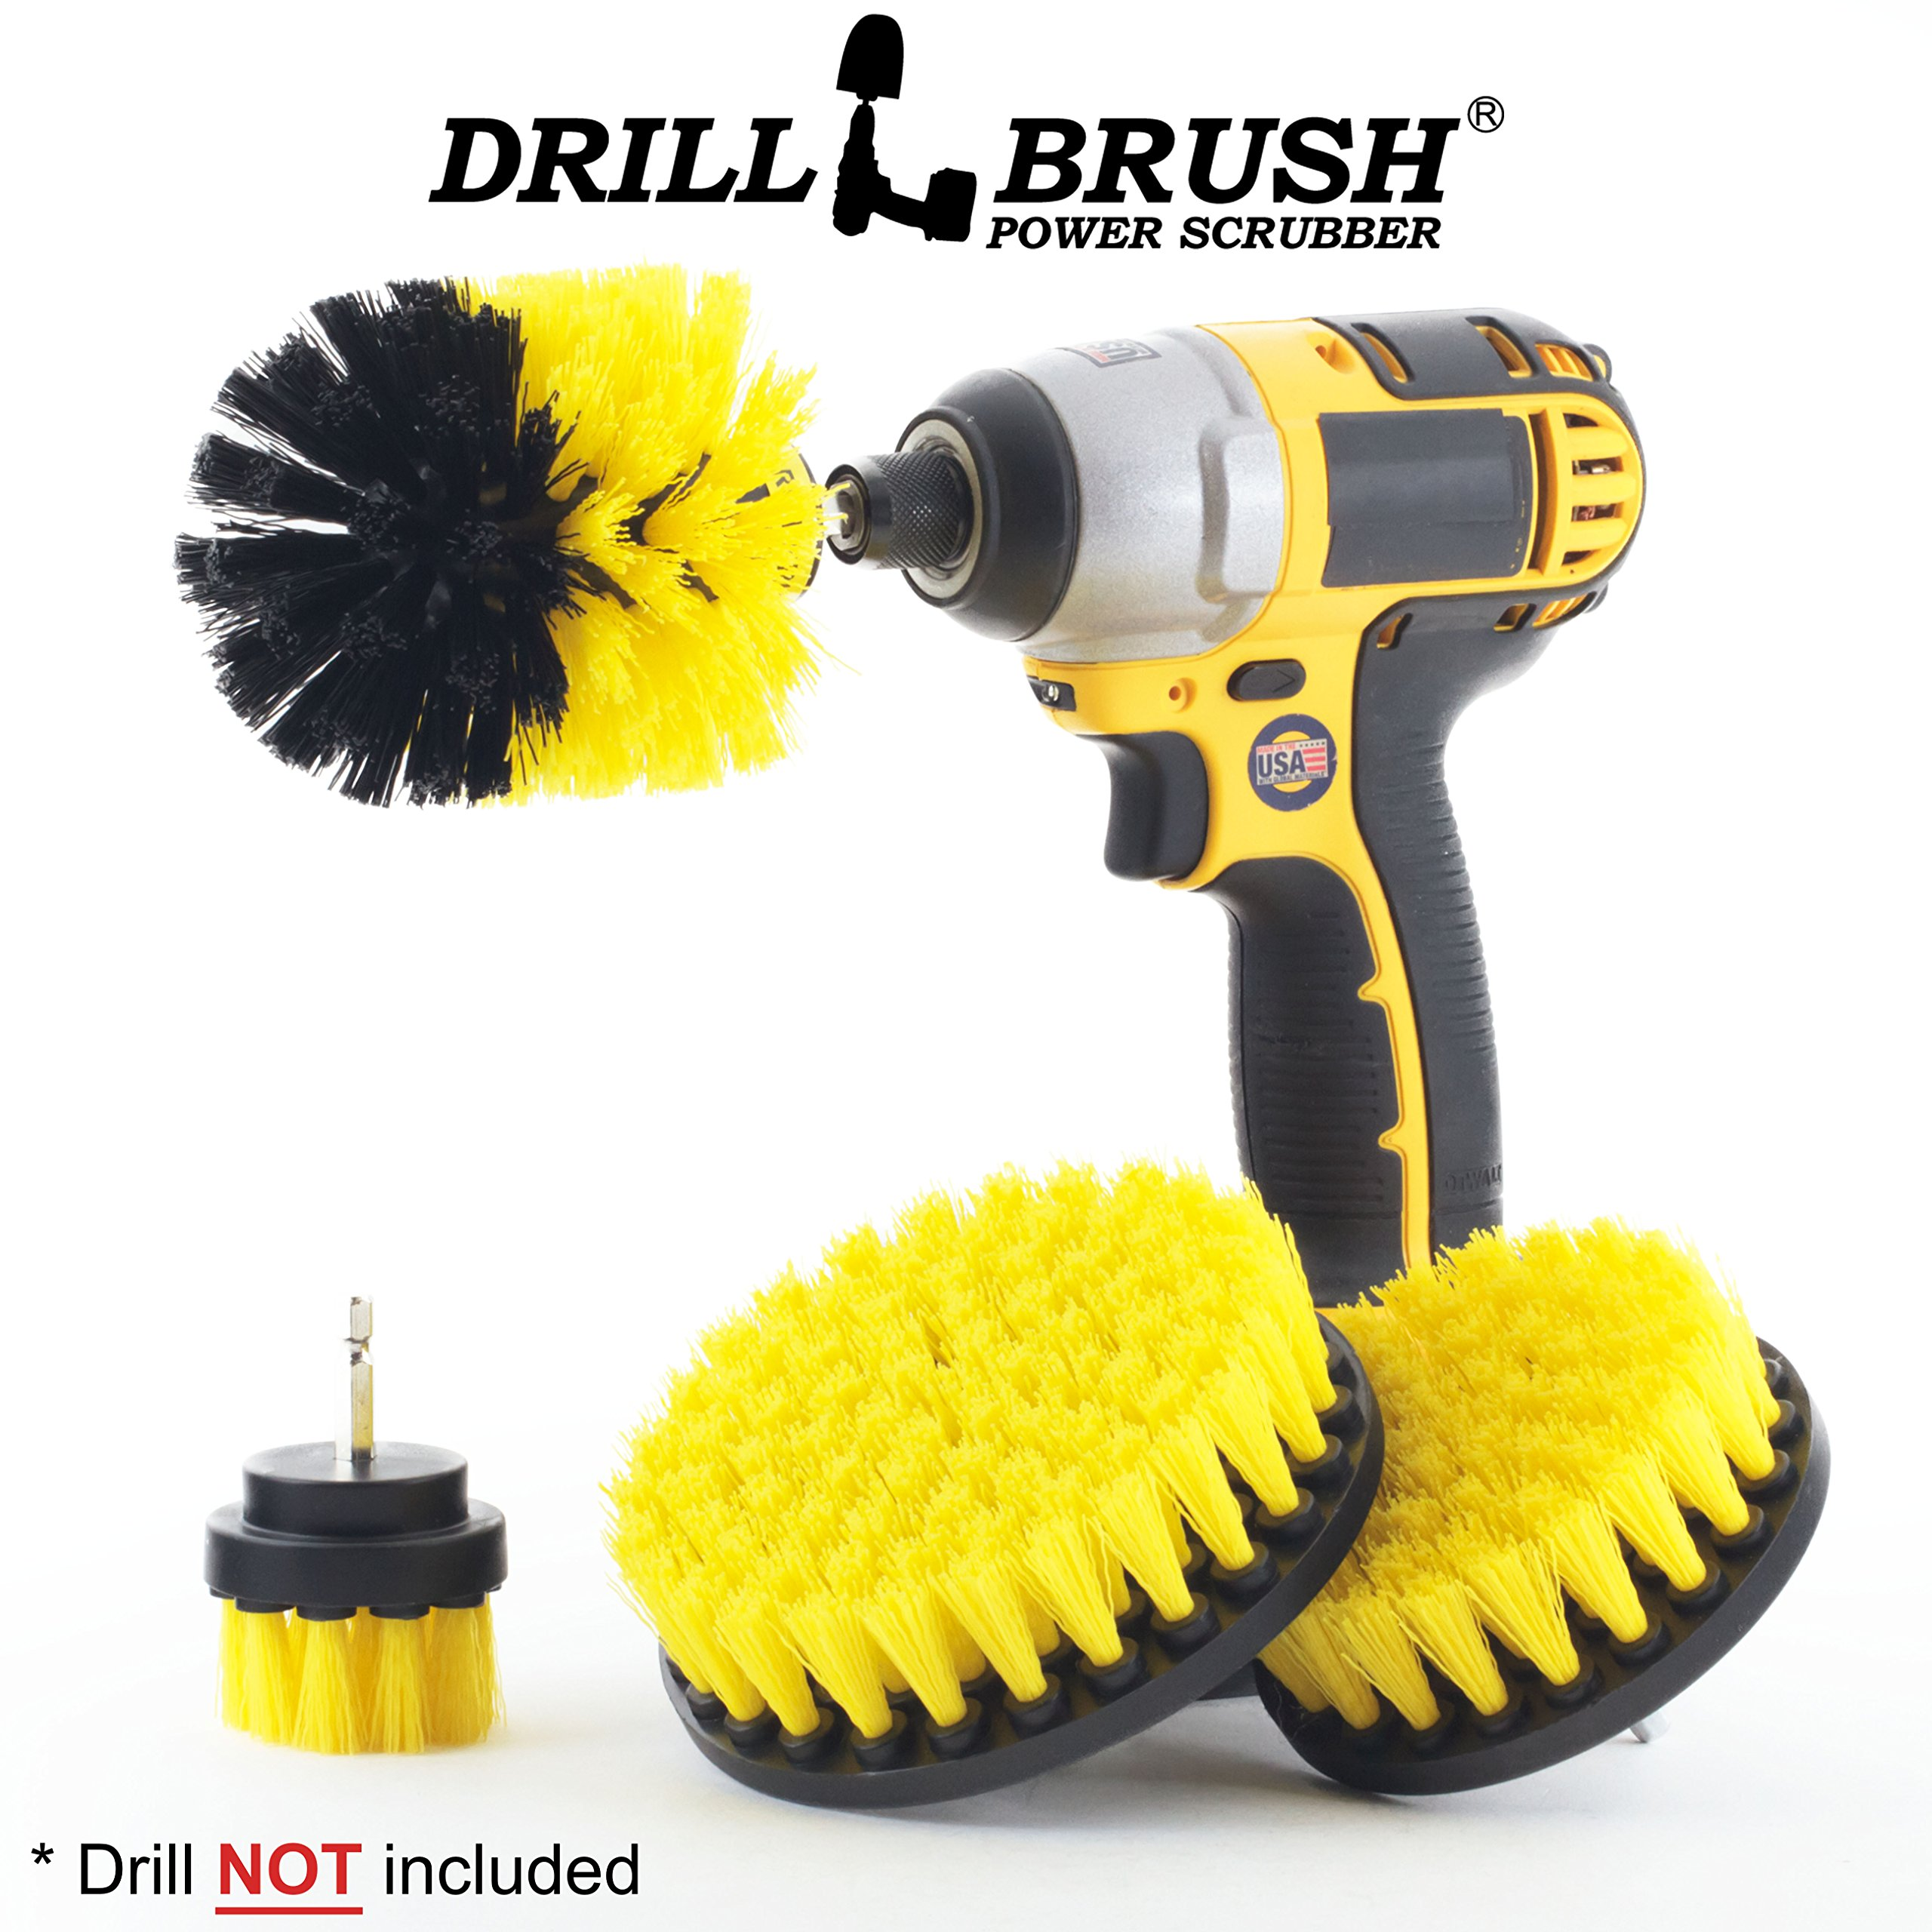 Bathtub Cleaning Drill Brush cumberlanddems